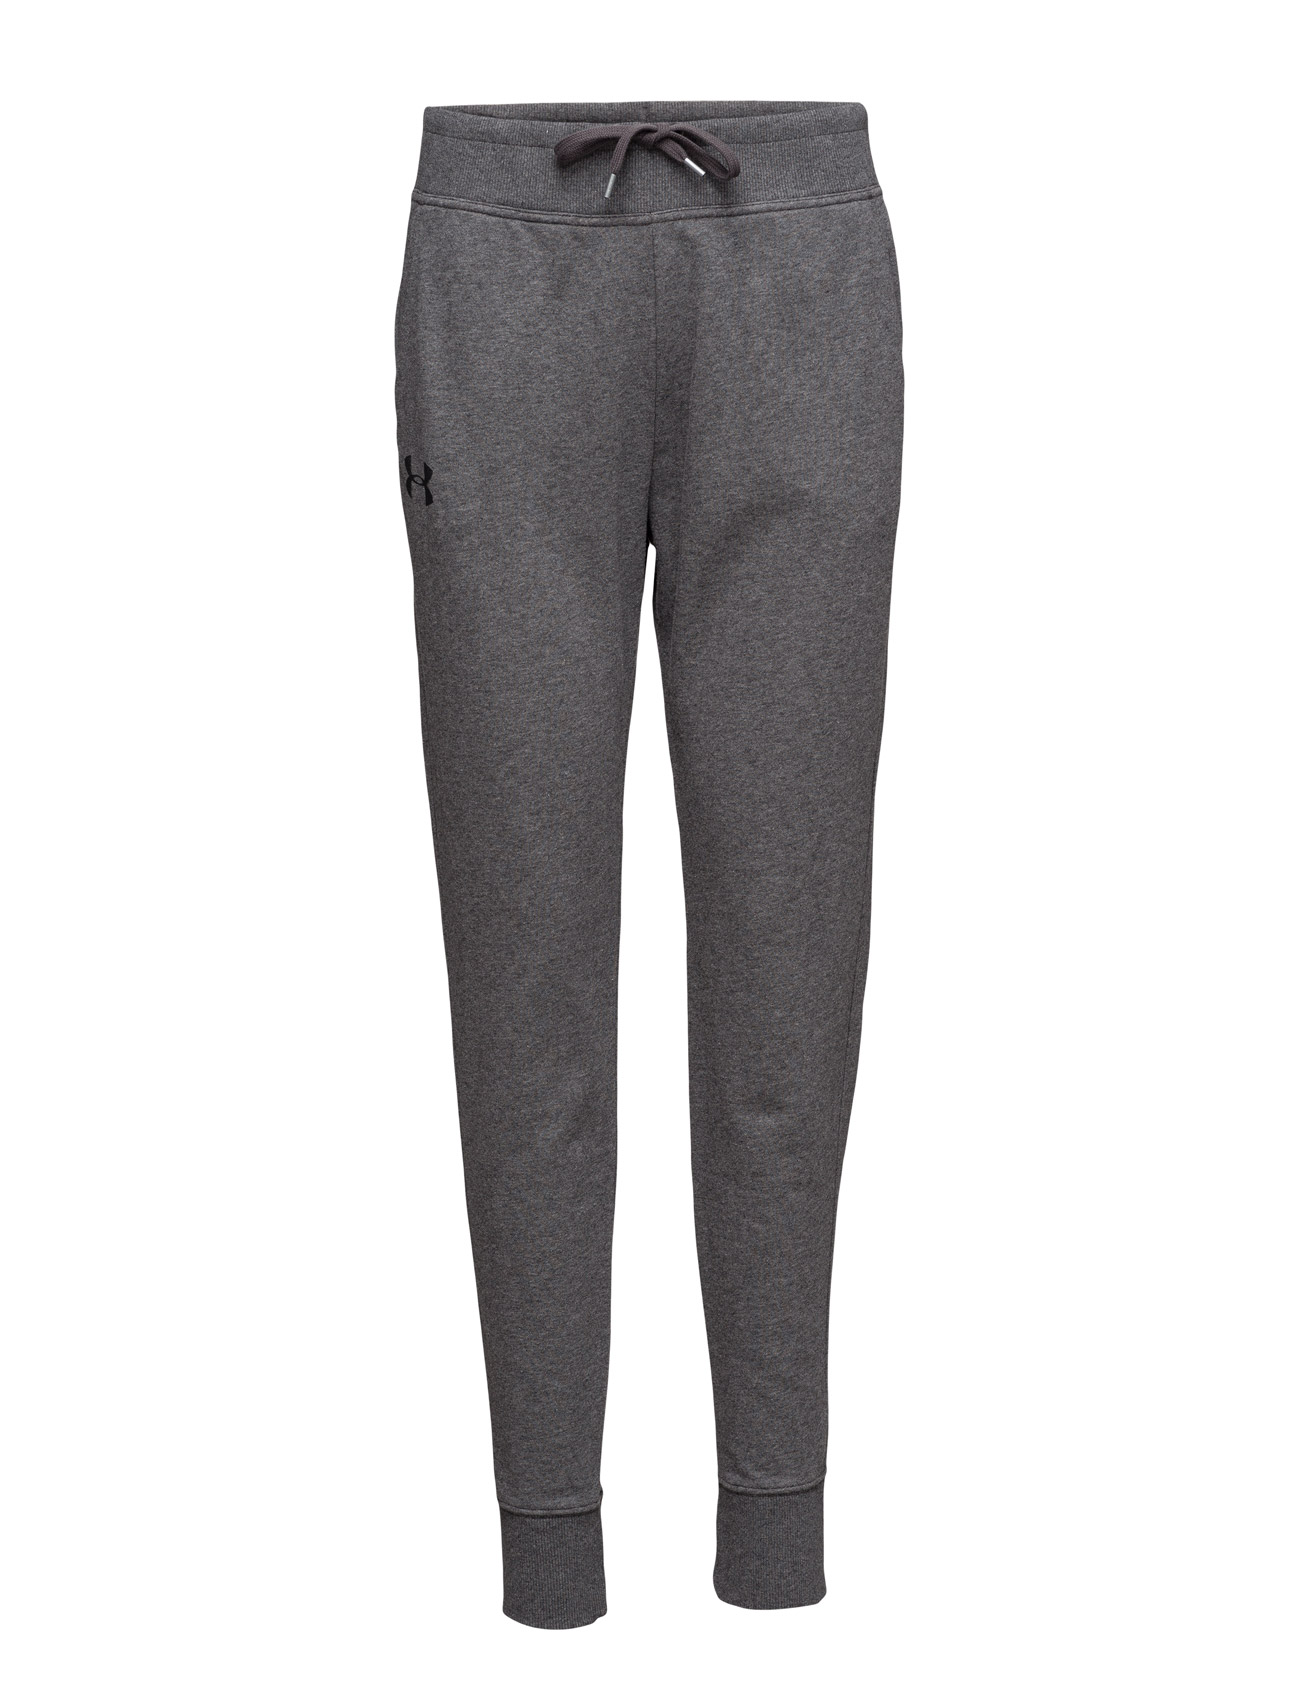 French Terry Jogger Pant Under Armour Træningsbukser til Damer i